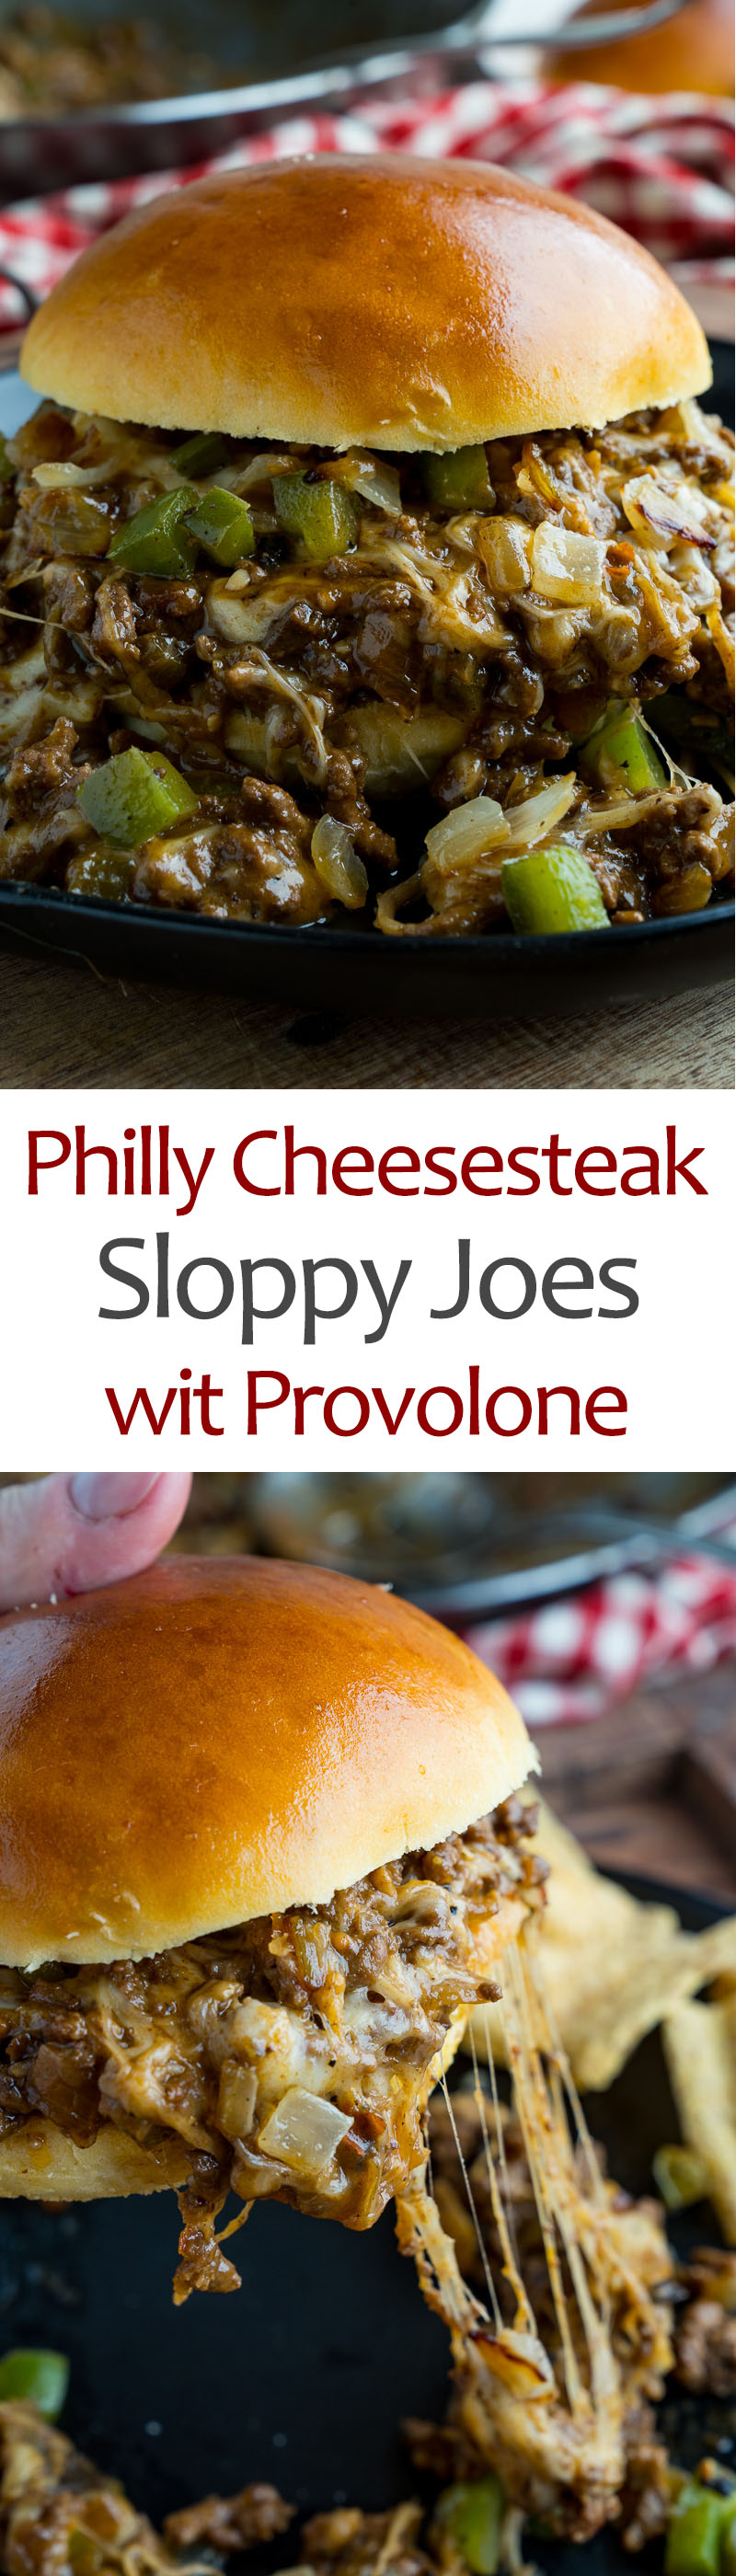 Philly Cheesesteak Sloppy Joes wit Provolone